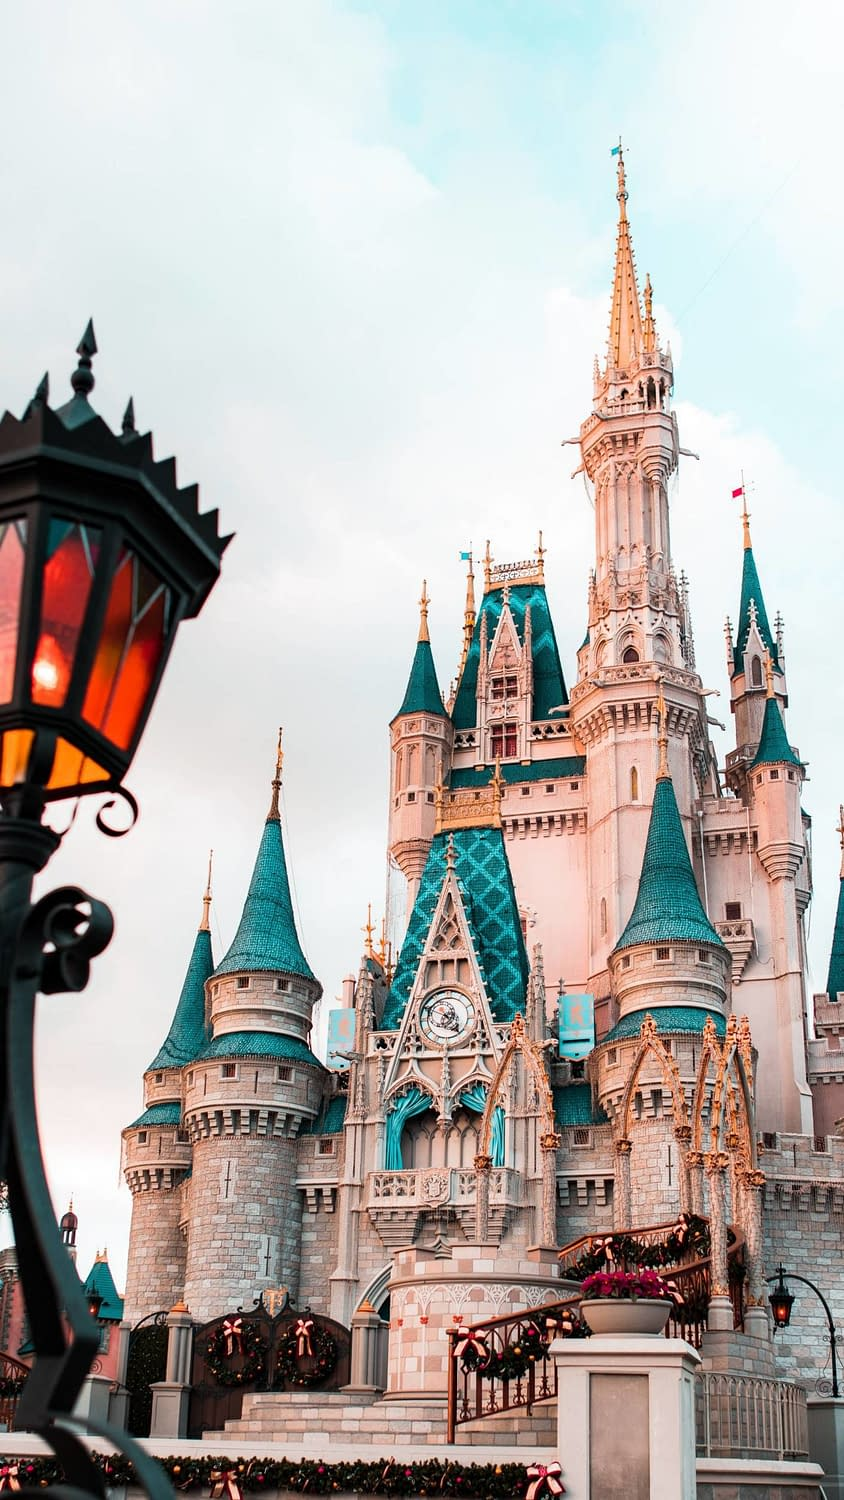 A daytime shot of the iconic castle in Disney's Magic Kingdom Park